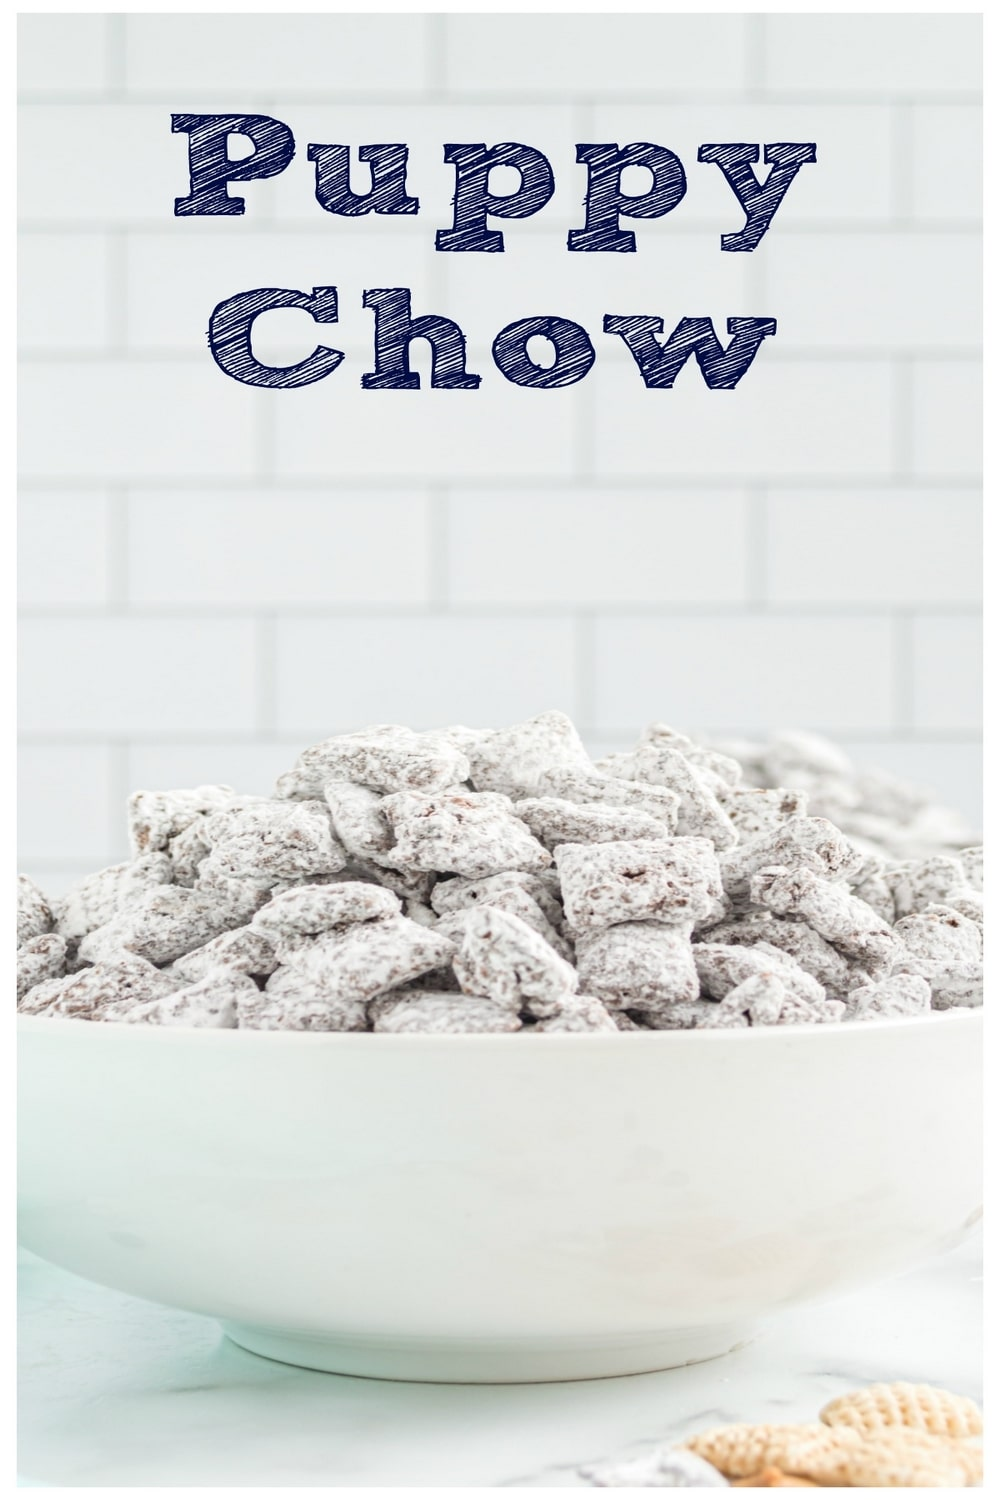 A delicious Puppy Chow recipe, sans the butter, that is the perfect sweet treat for your snacking crew. via @cmpollak1